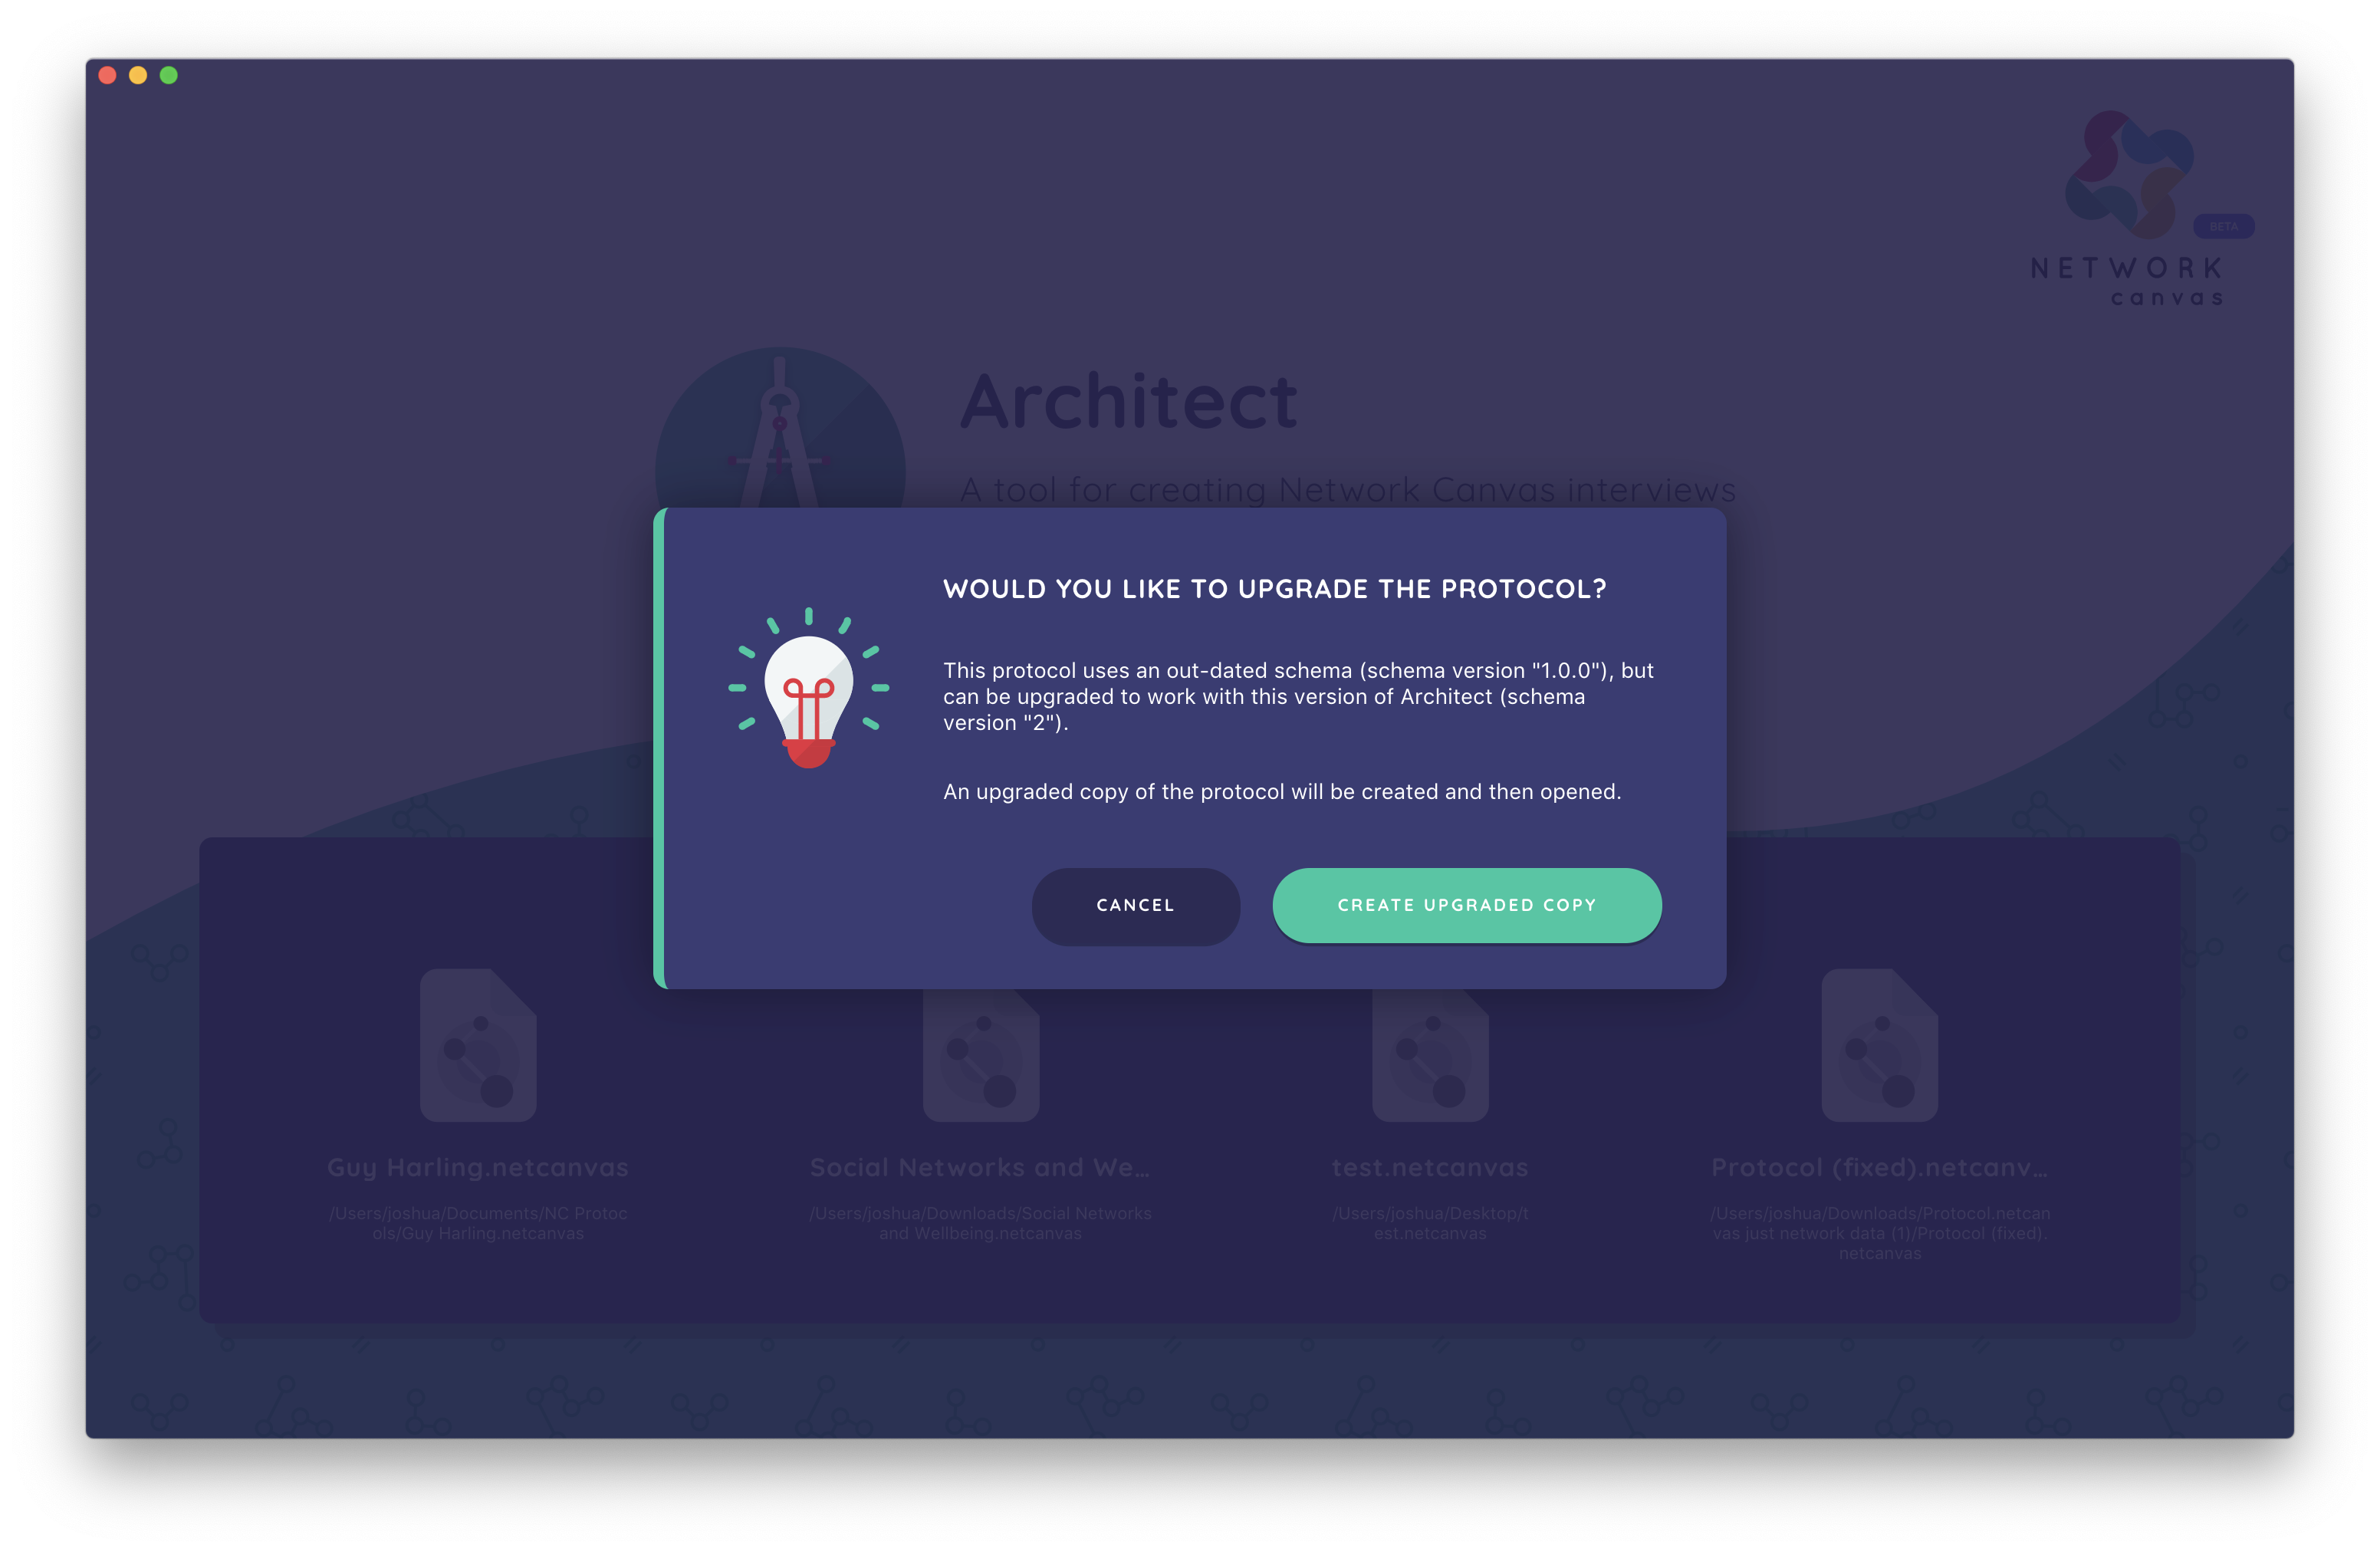 Architect may ask you to migrate a protocol before it can be opened.